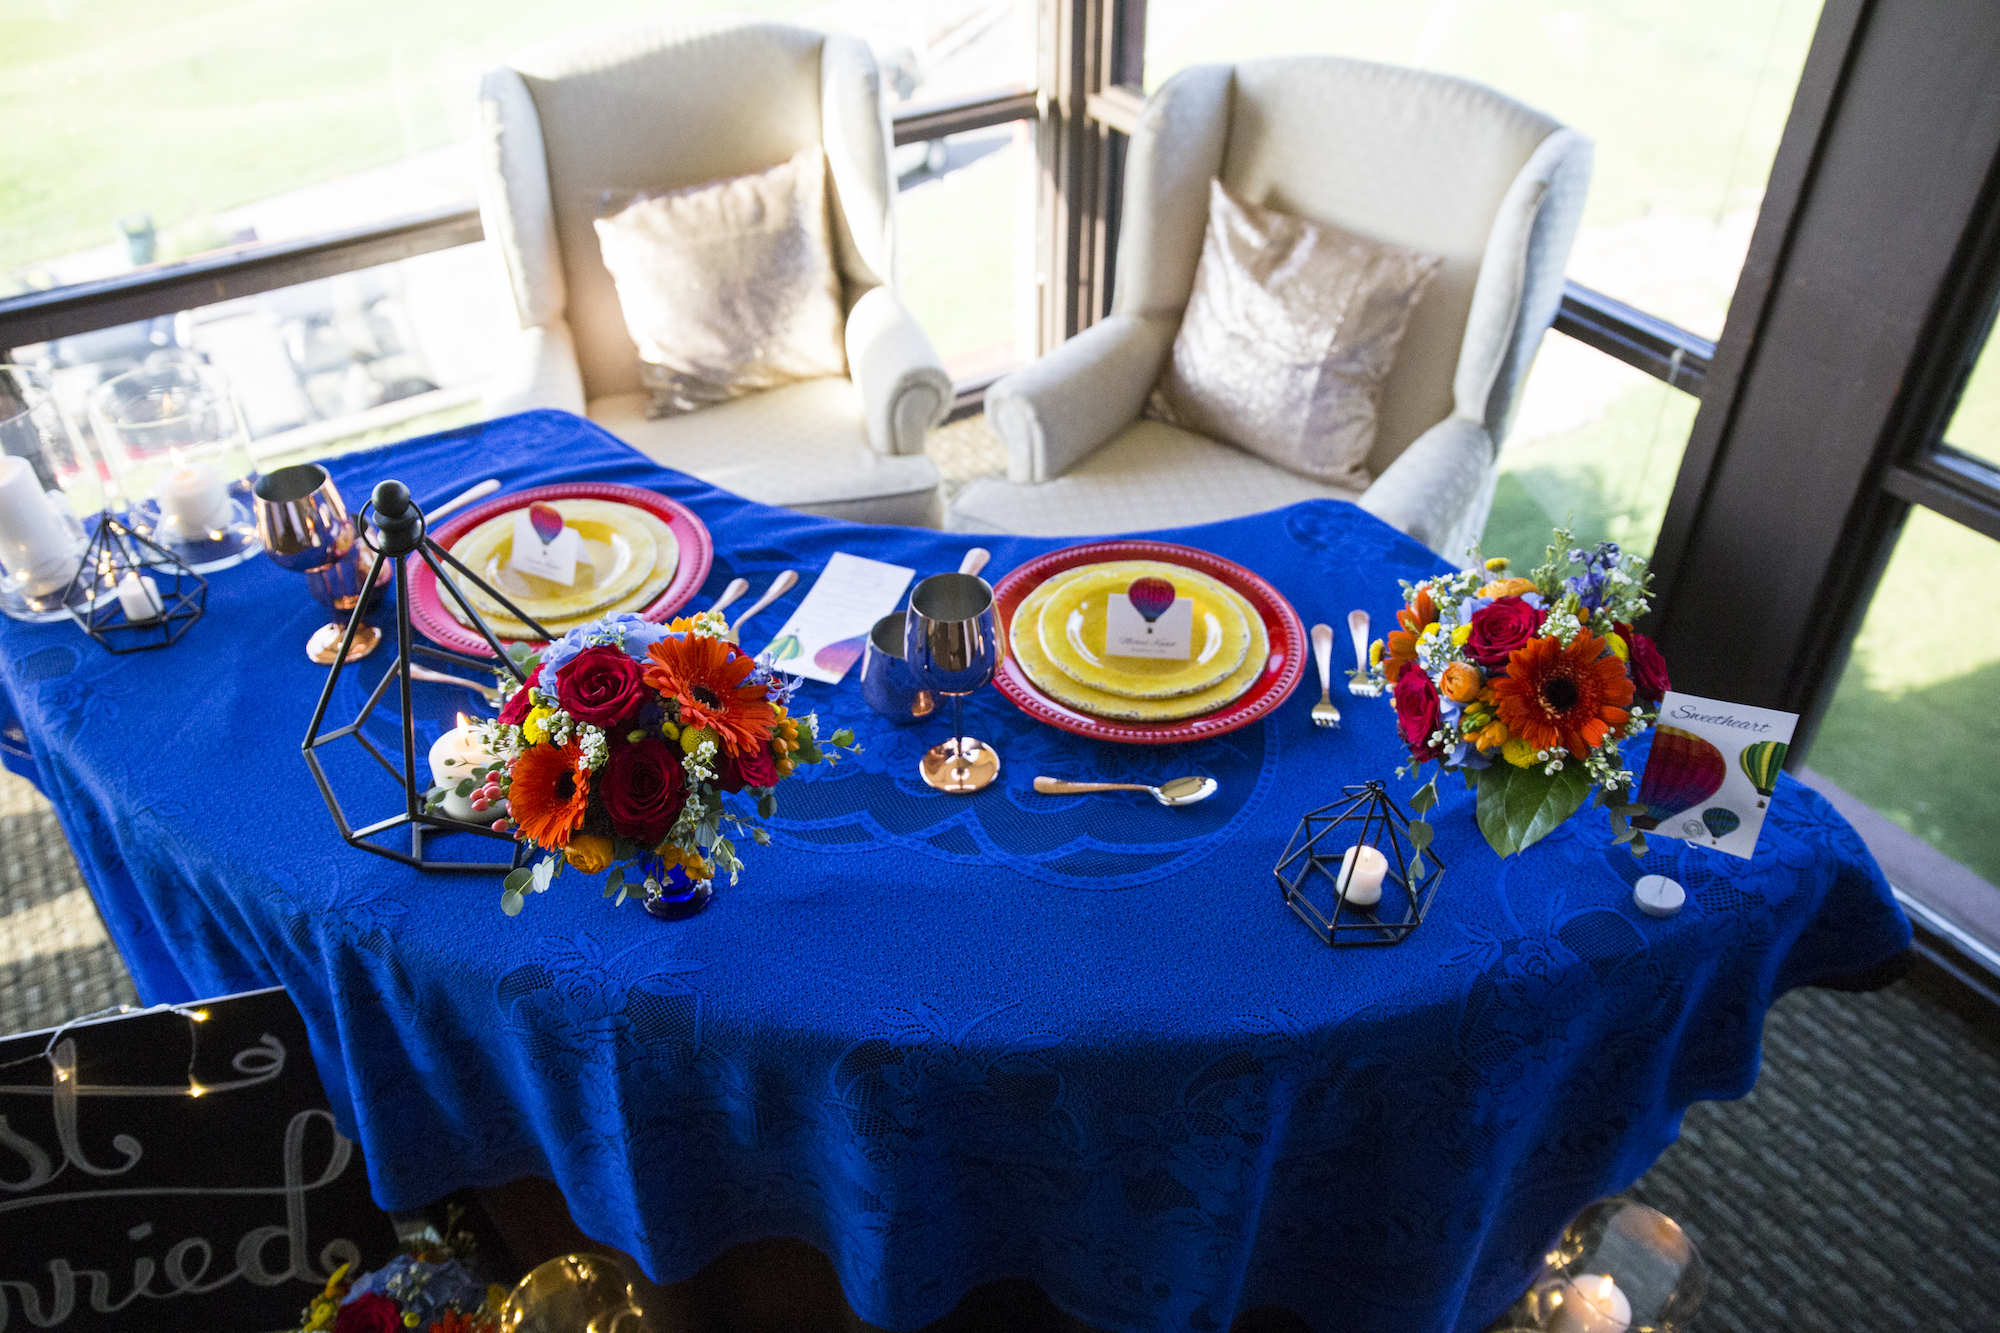 wedding planning design decor inspo real local New Mexico Perfect Wedding Guide couple bright color blue orange red hot air balloon love venue decor tablescape design sunflowers floral arrangement details indoor photography professional